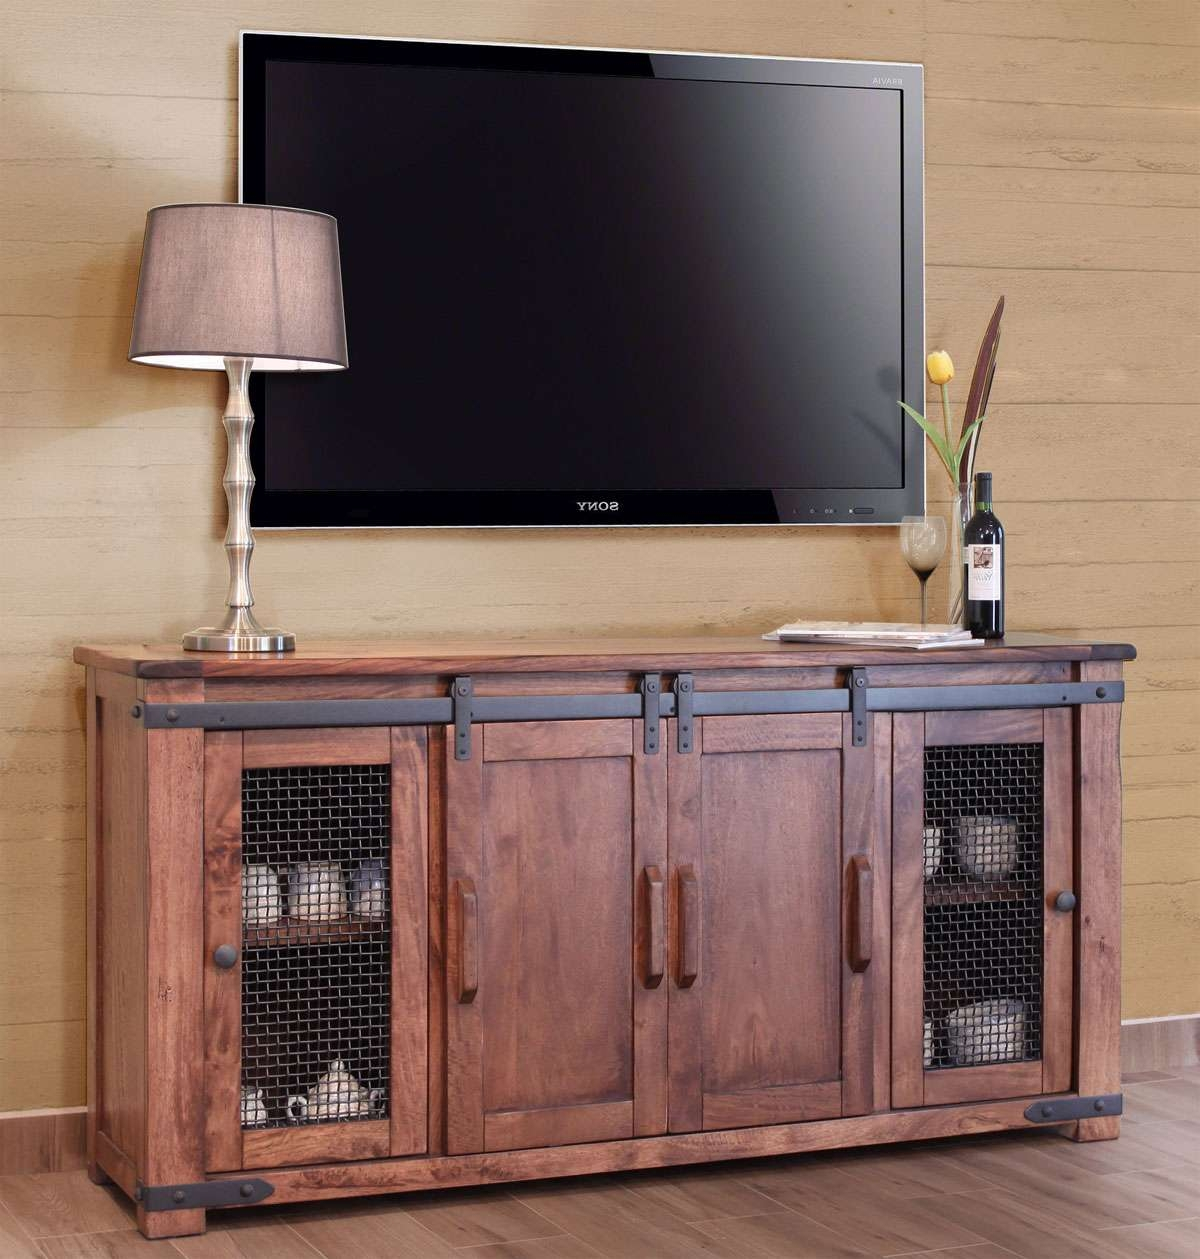 Tv : 70 Inch Tv Stand Amazing Rustic 60 Inch Tv Stands Greenview With Regard To Rustic White Tv Stands (View 18 of 20)